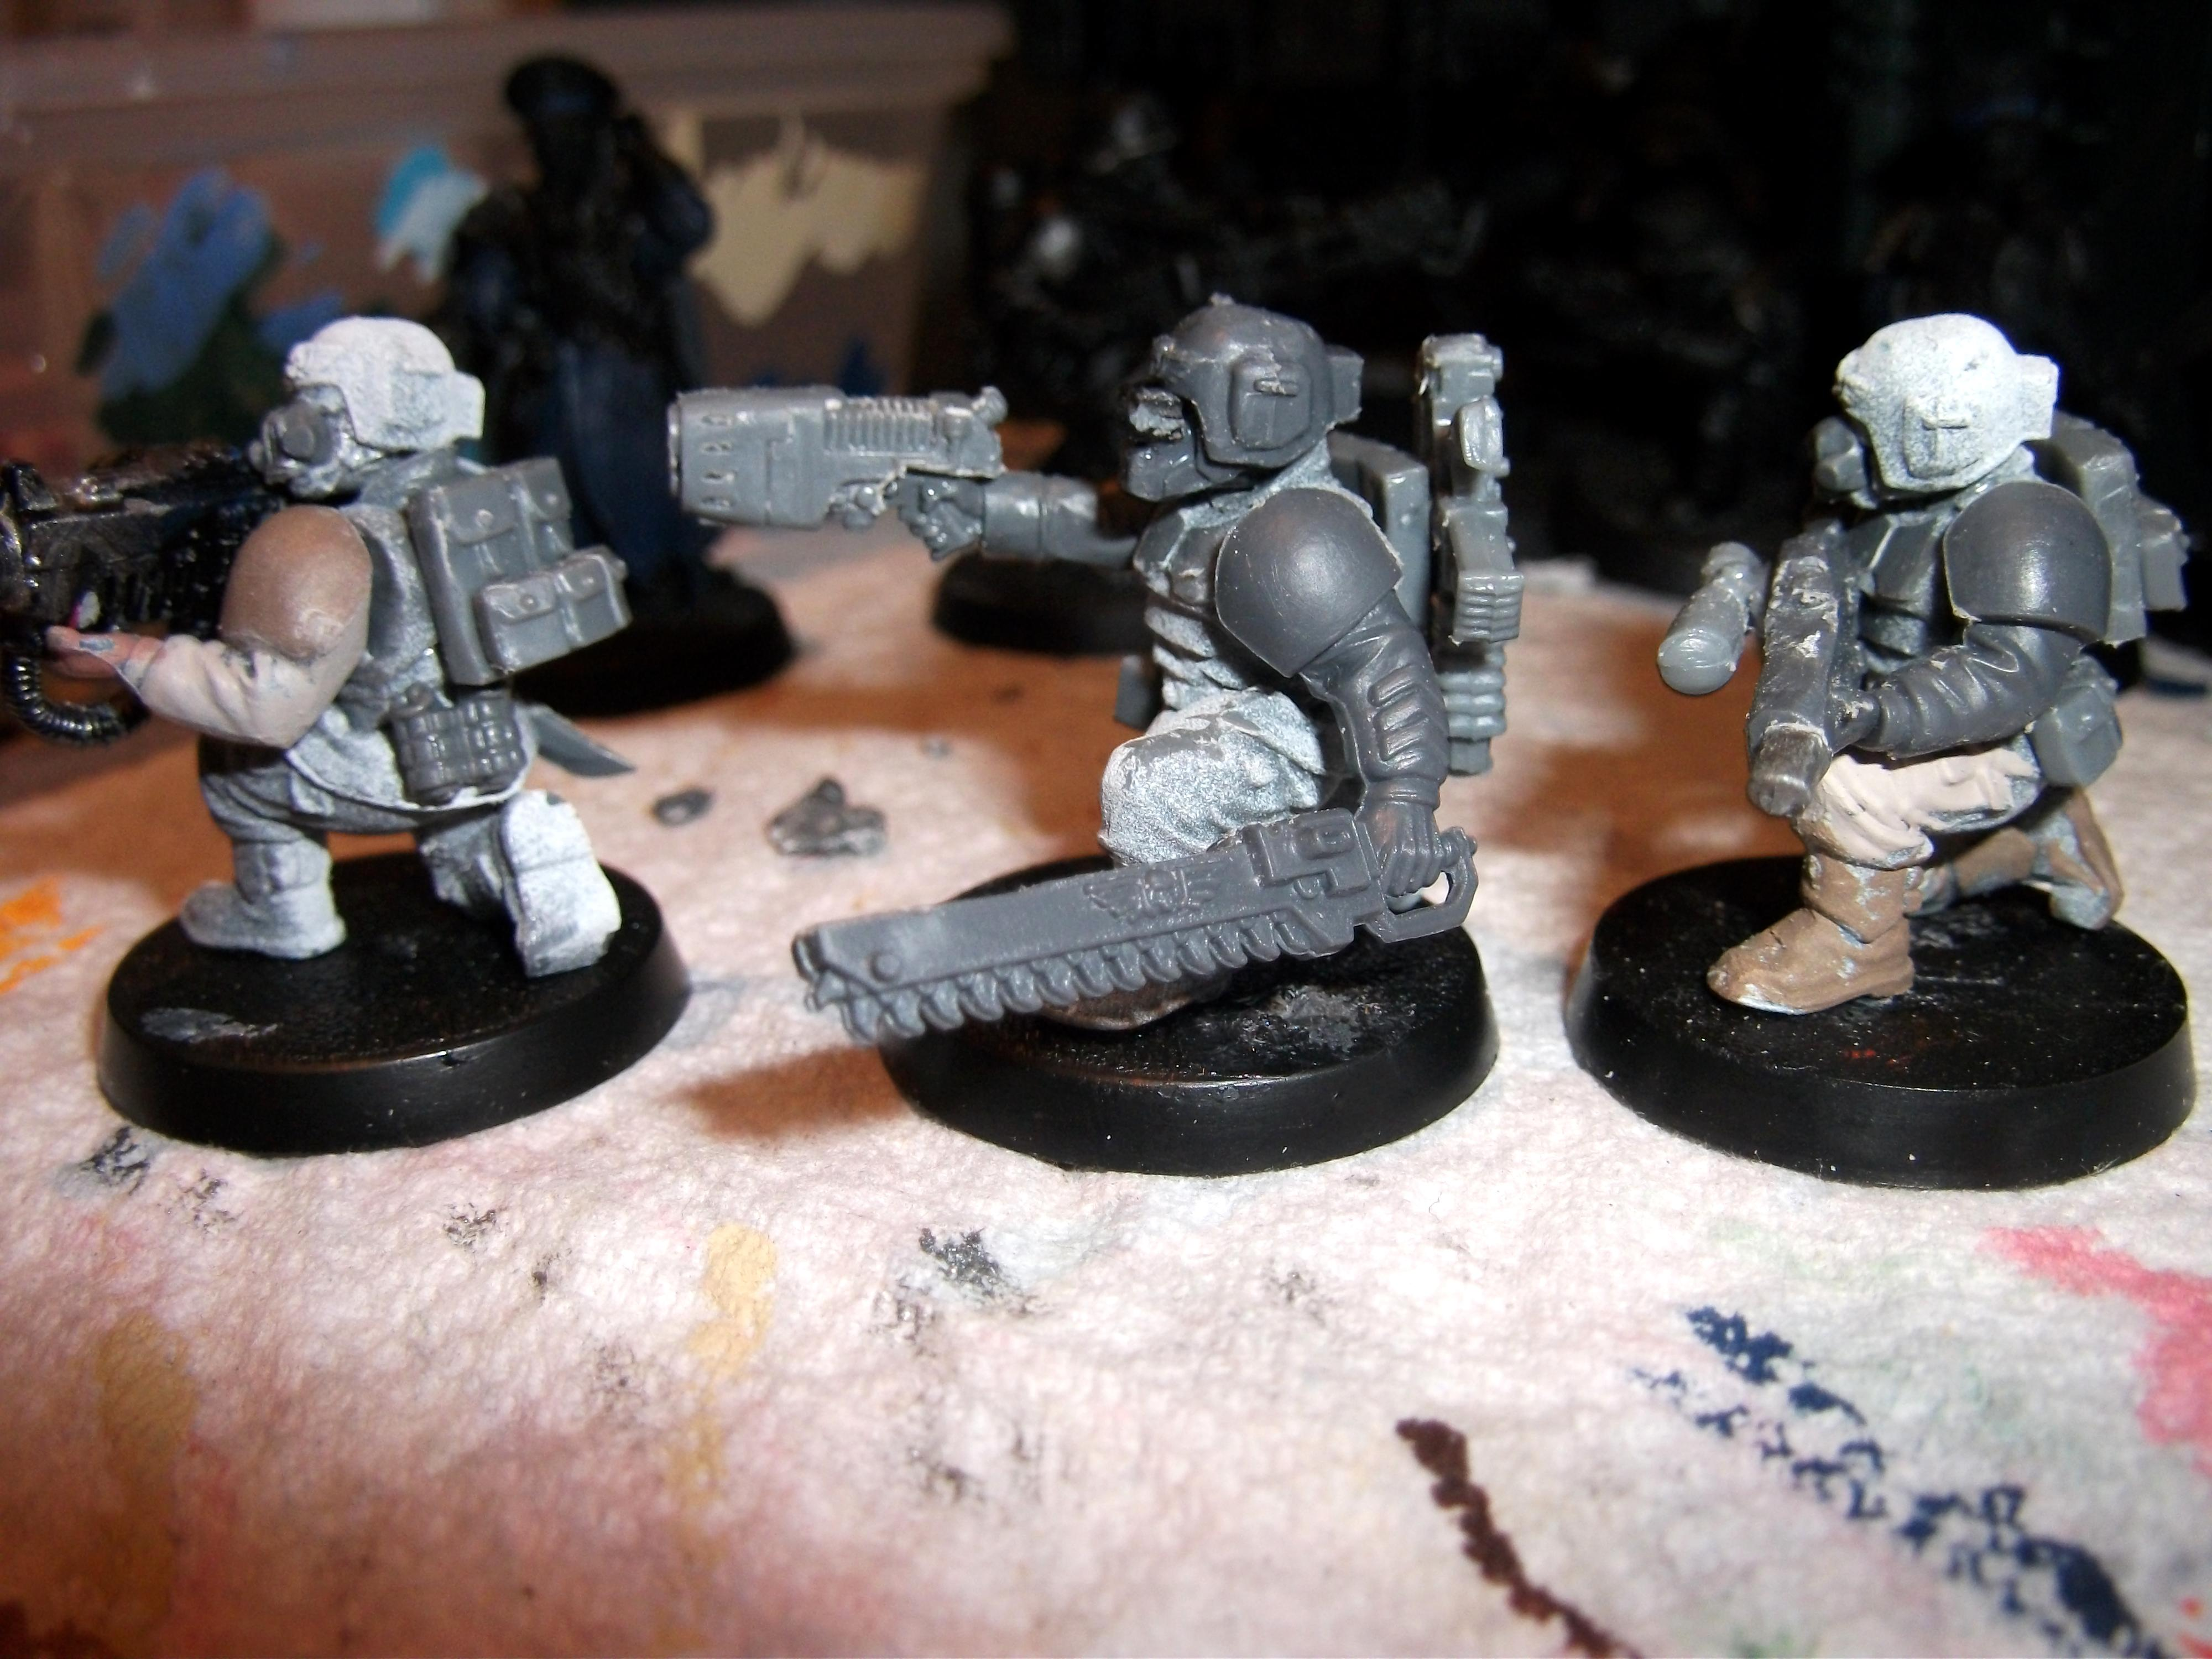 Backpacks, Conversion, Gasmasks, Goggles, Imperial Guard, Storm Troopers